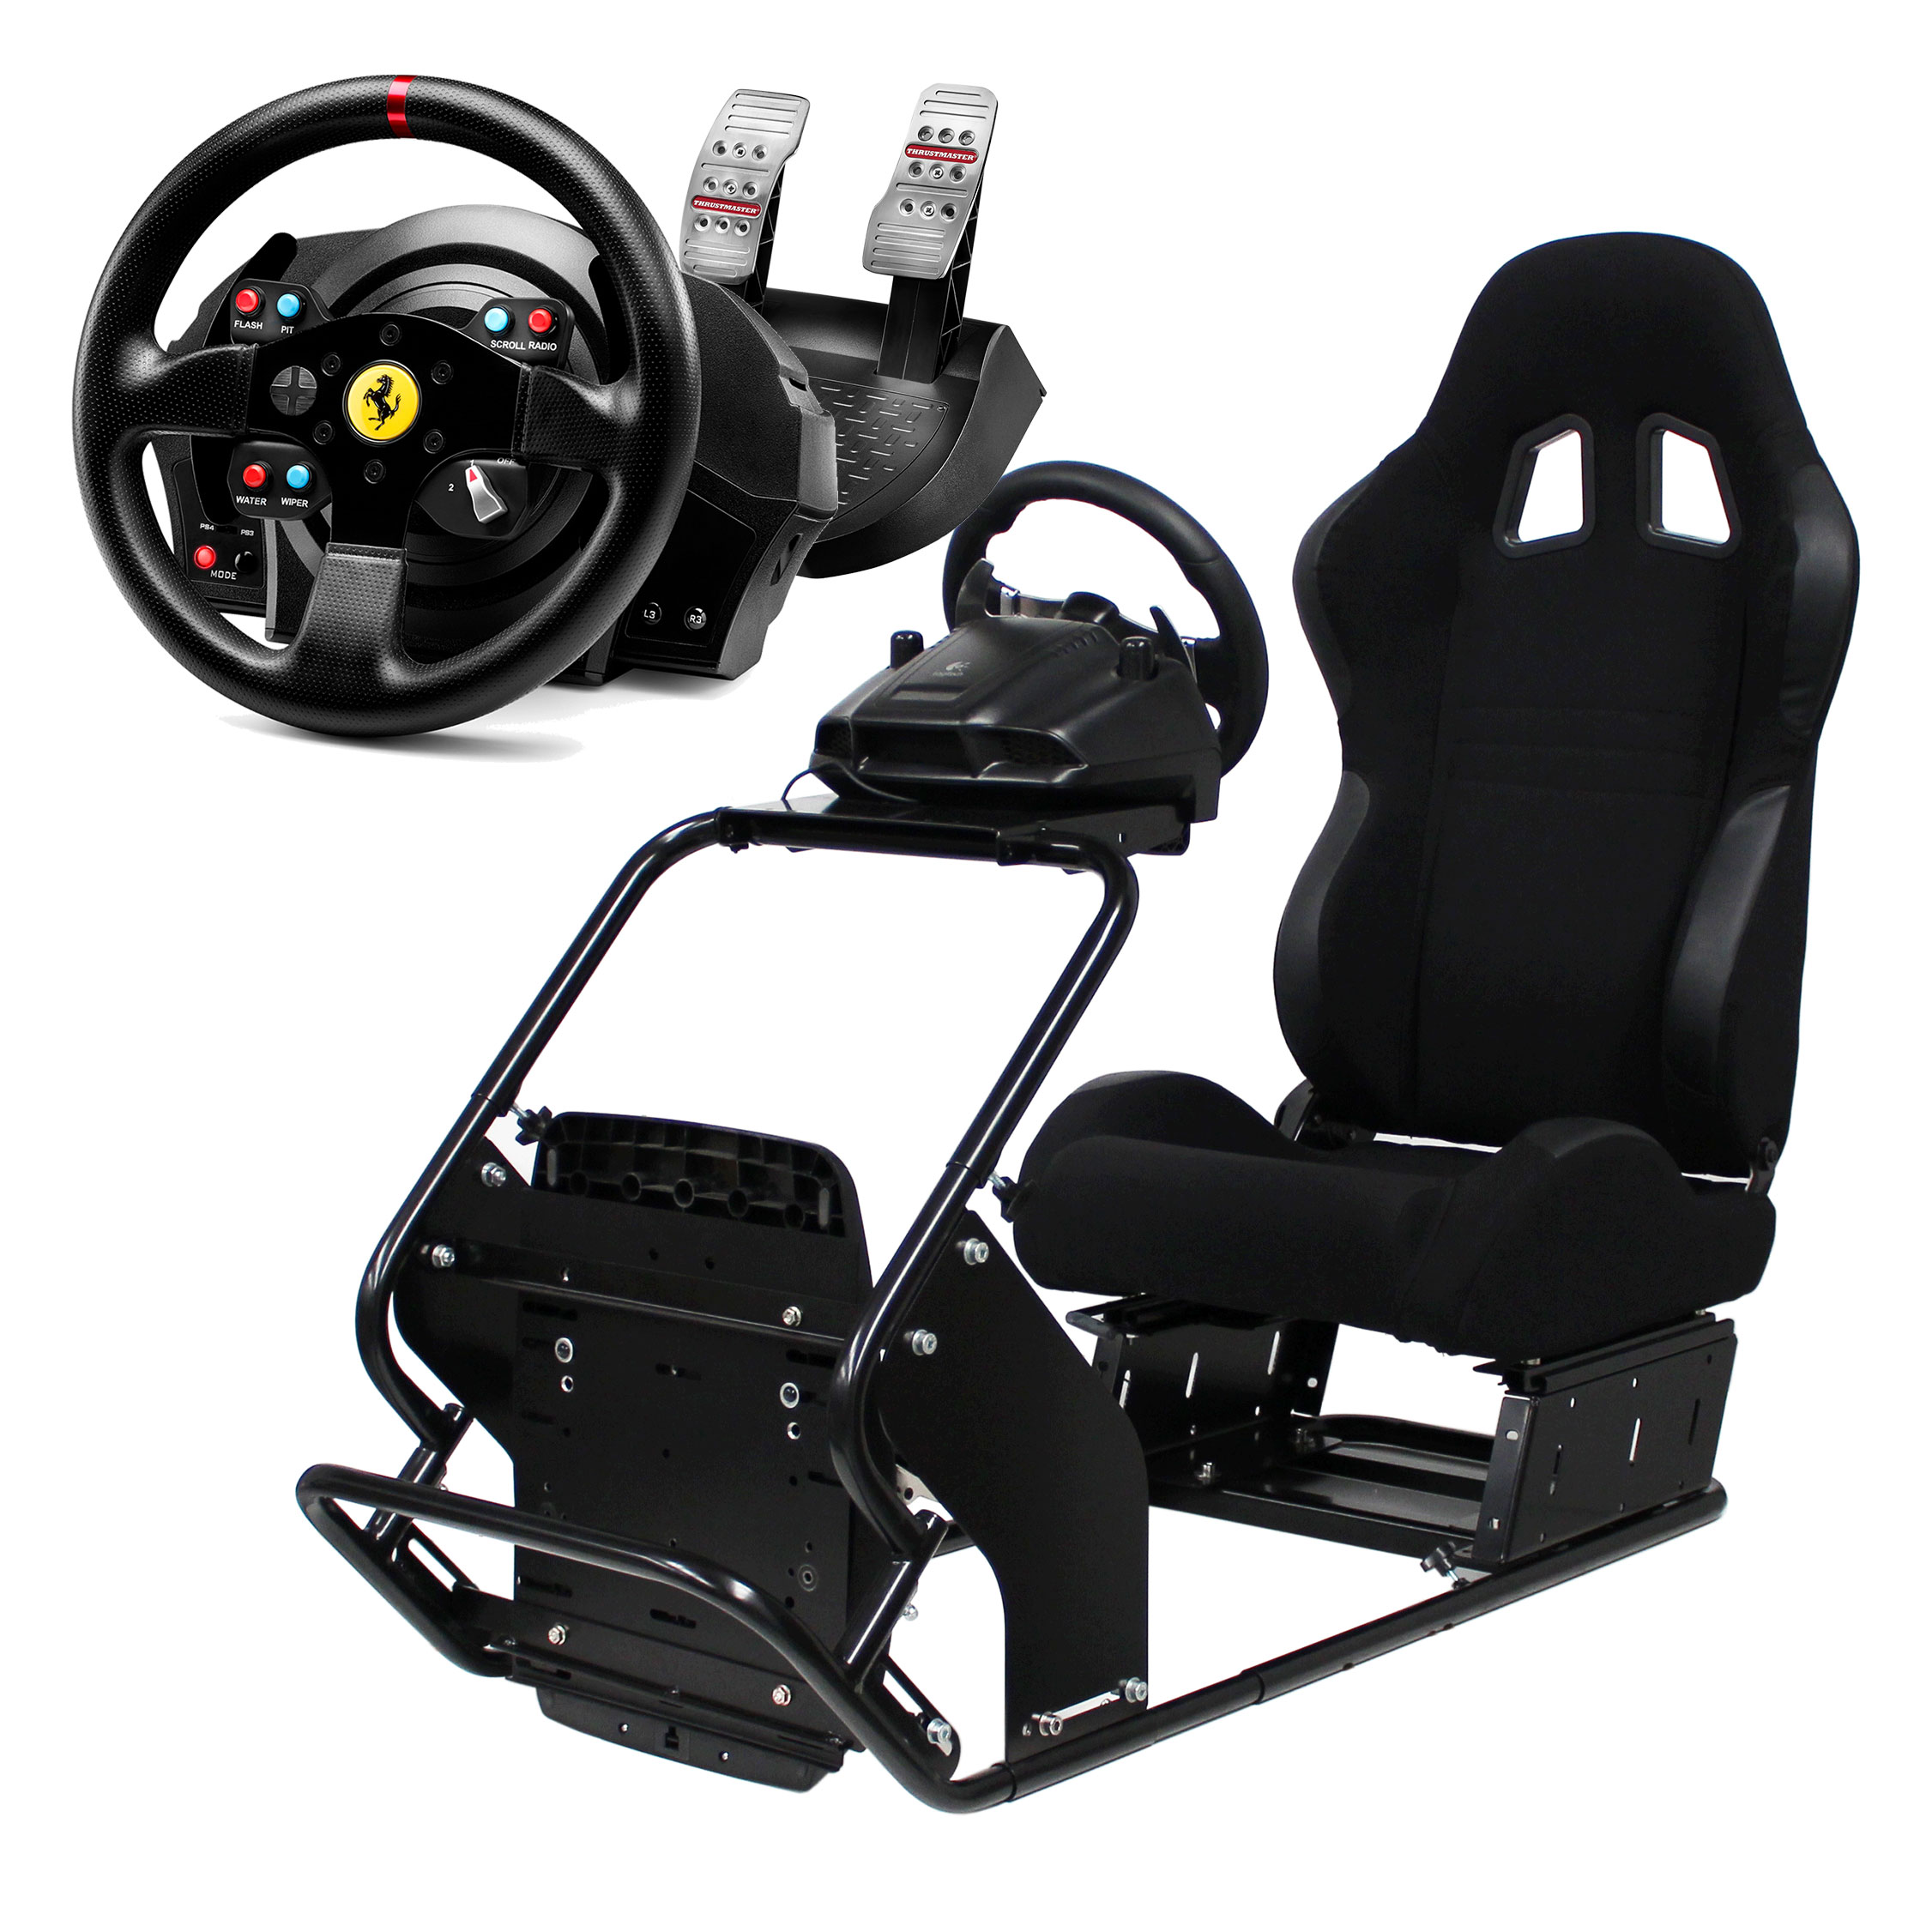 RACE SIMULATOR D-RS 0001-S1 & T300 GTE